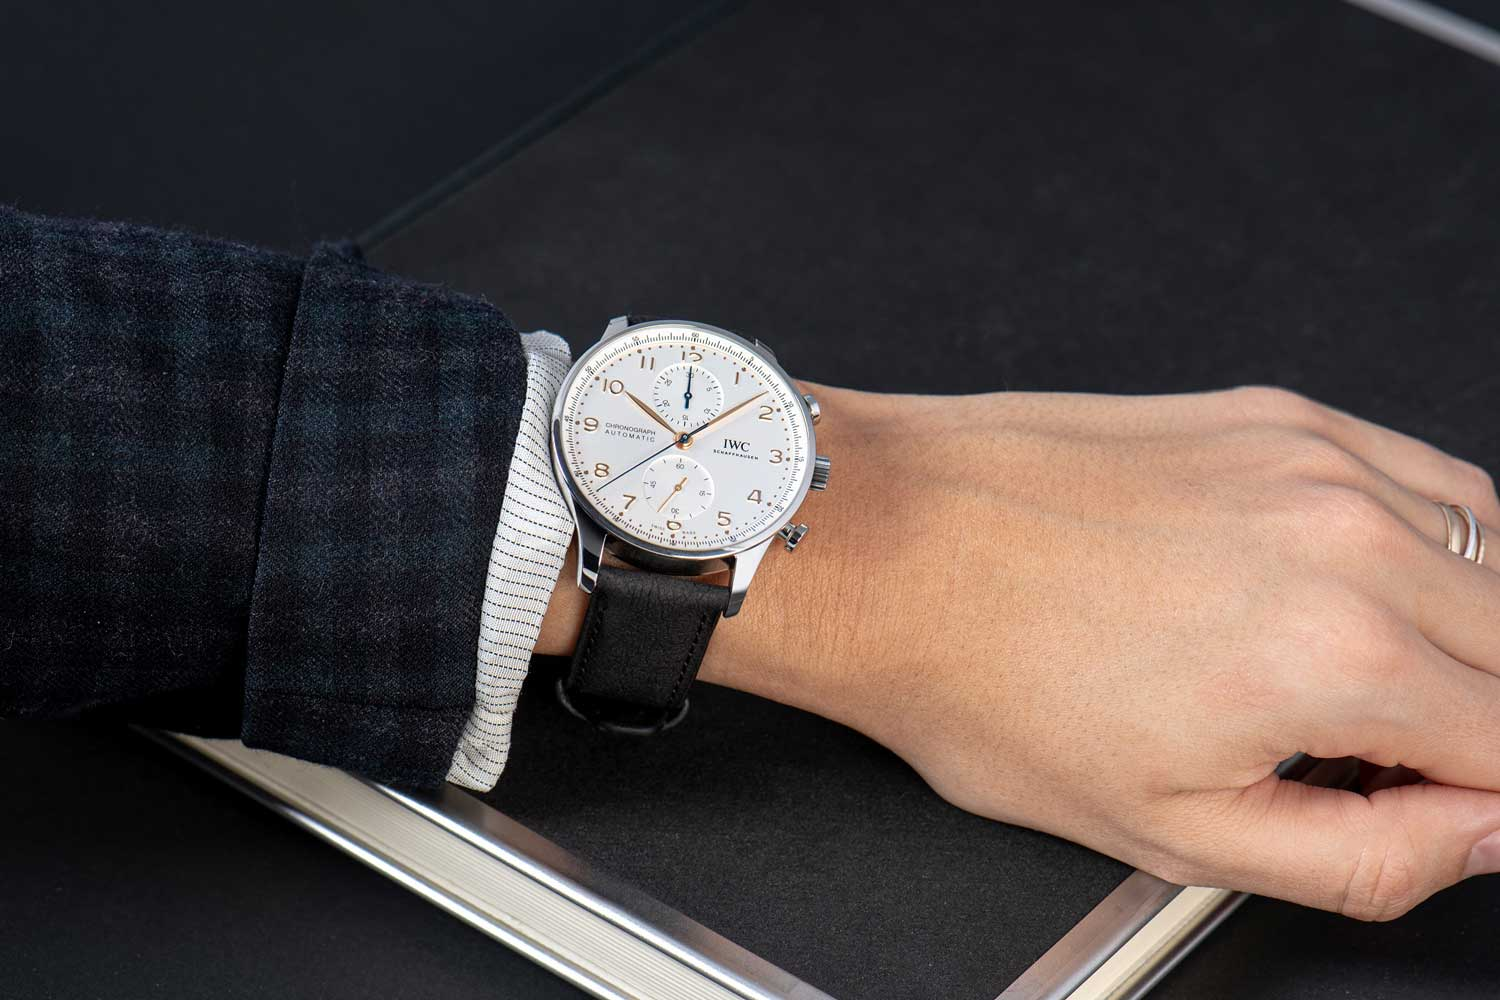 IWC's TimberTex straps are composed of 80 percent plant fibers and the cellulose utilized comes from Forest Stewardship Council (FSC) certified trees from sustainable, responsibly managed forests in Europe.